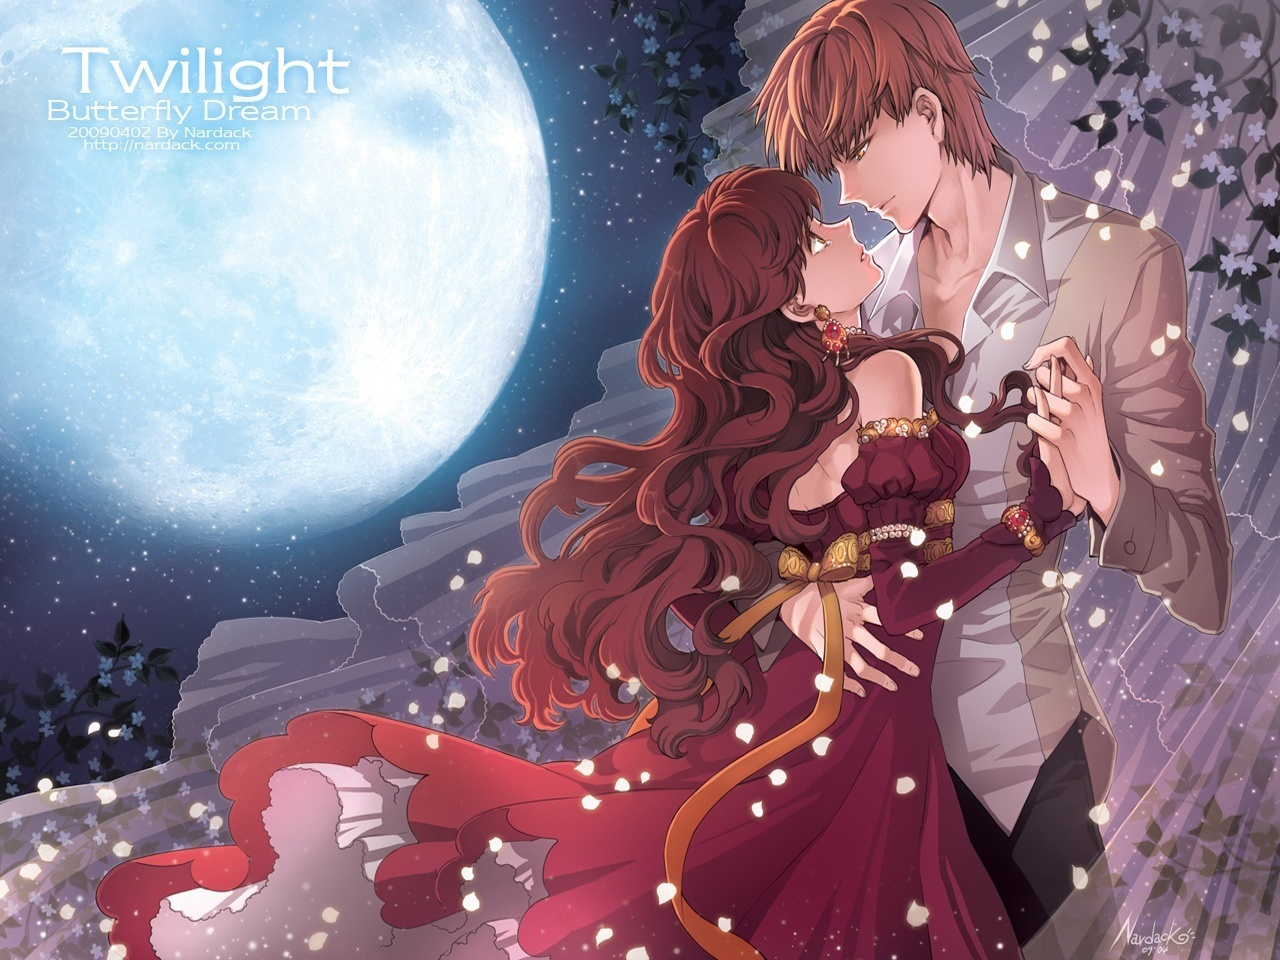 romantic anime latest and movie updates 434824 wallpaper wallpaper